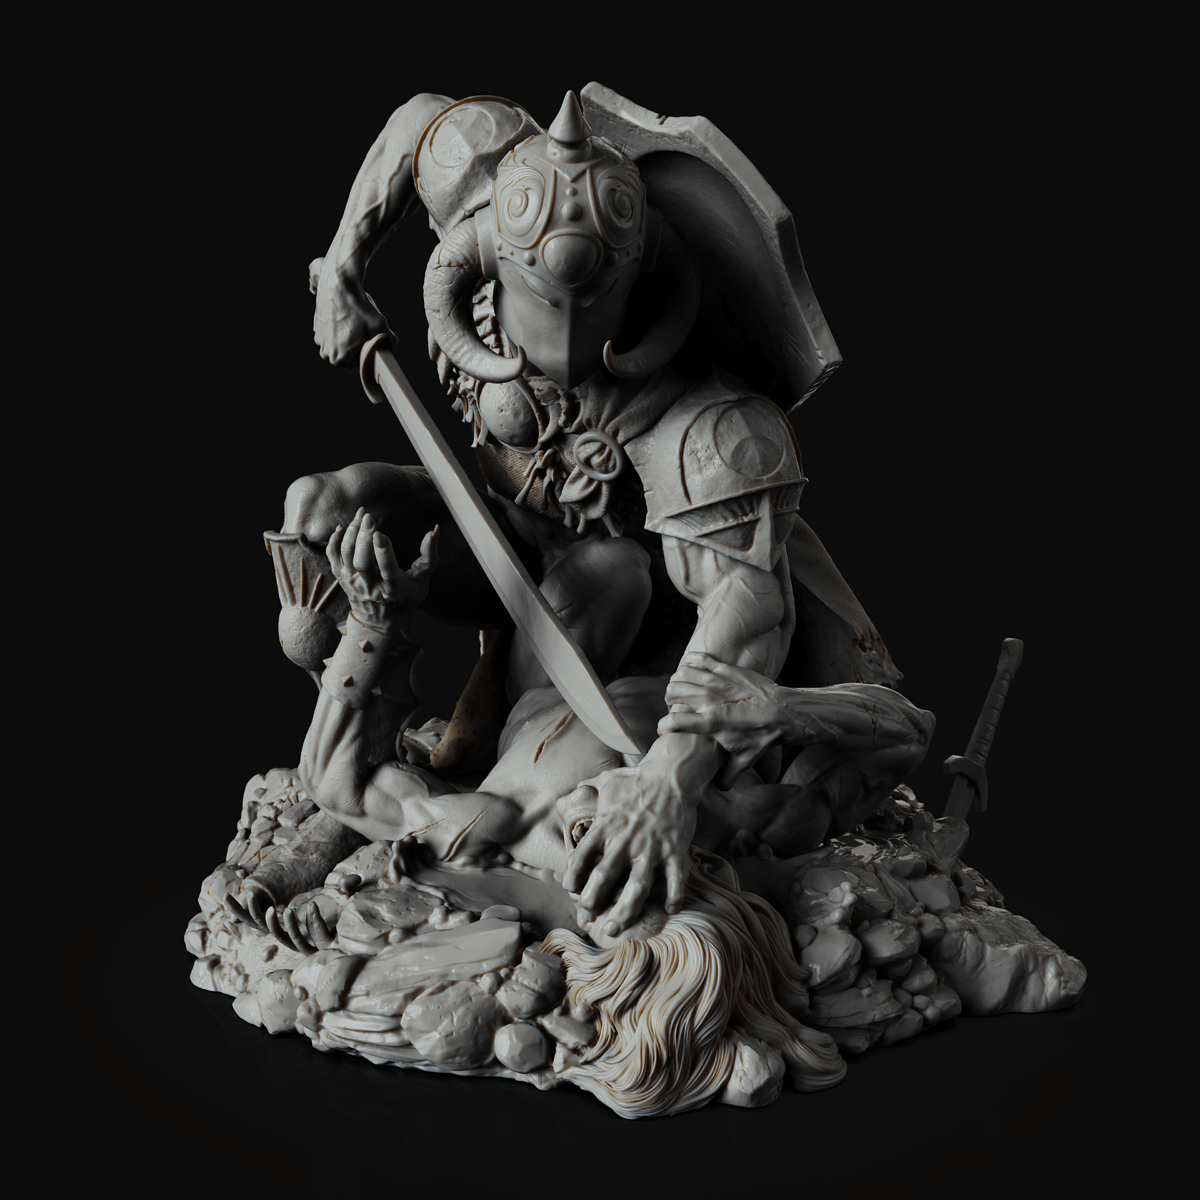 Death Dealer render 2.45